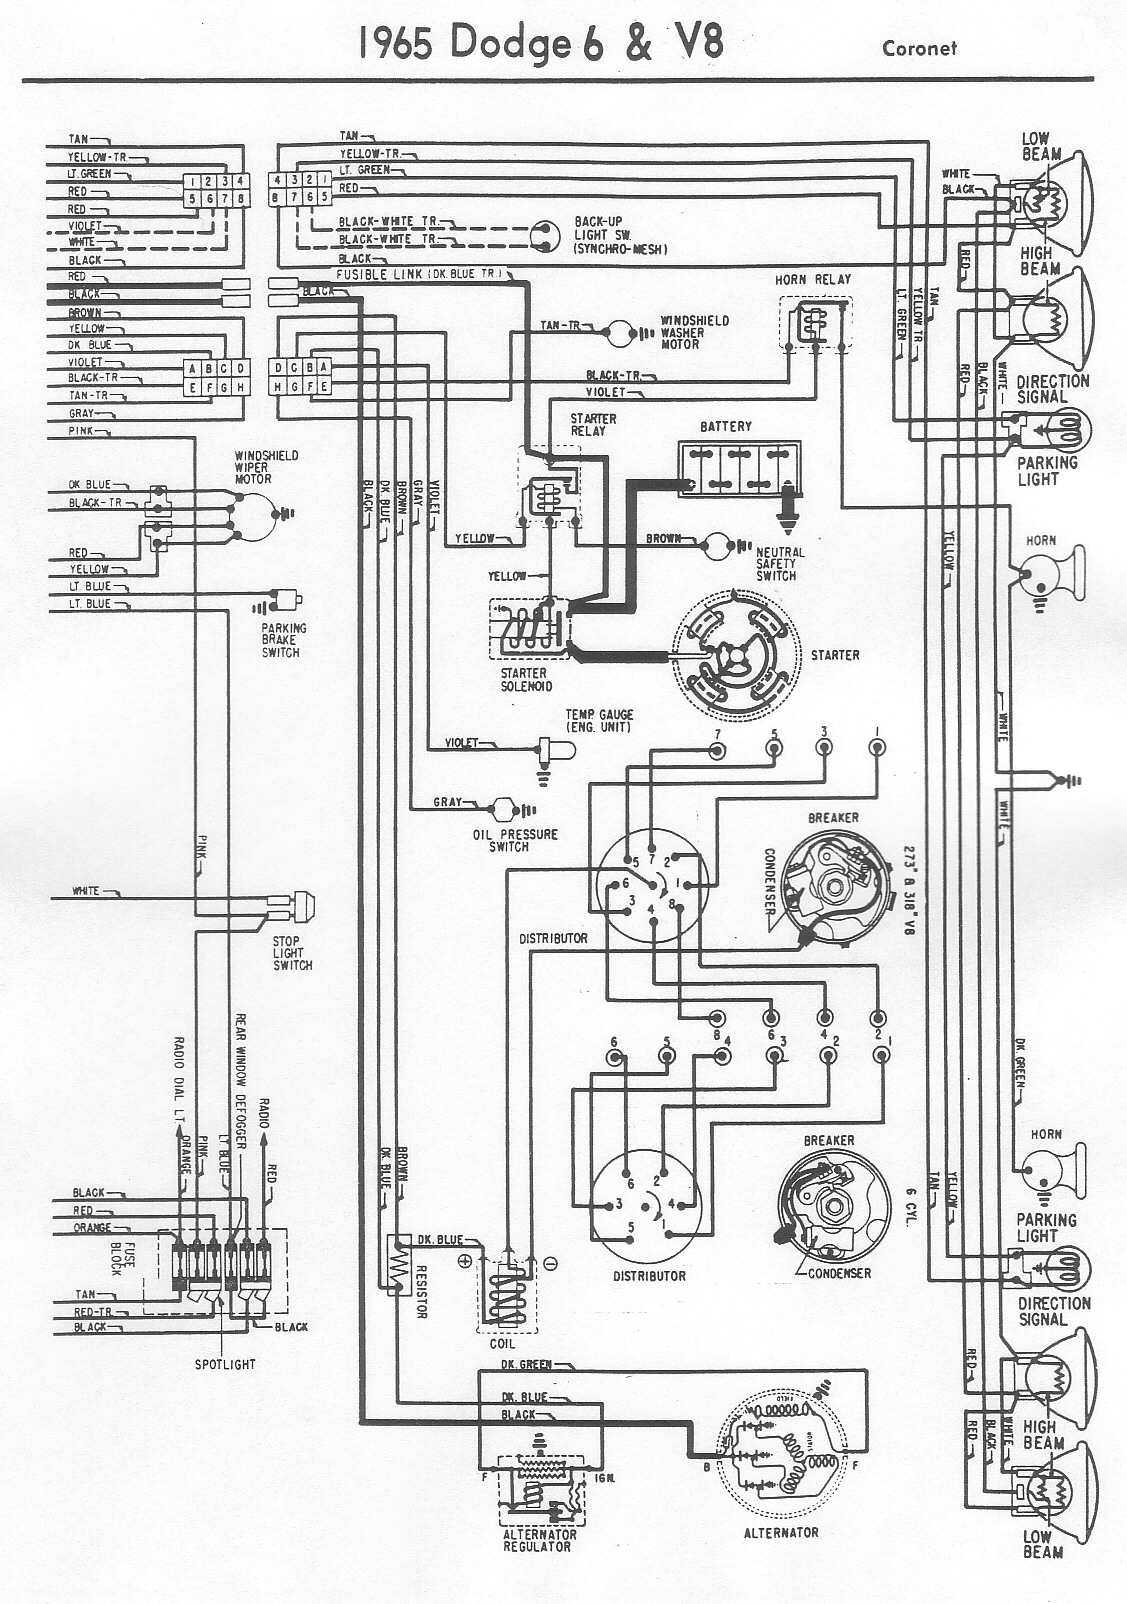 free mopar wiring diagrams wiring diagram origin 70 gto wiring diagram 70 mopar wiring diagram [ 1127 x 1604 Pixel ]